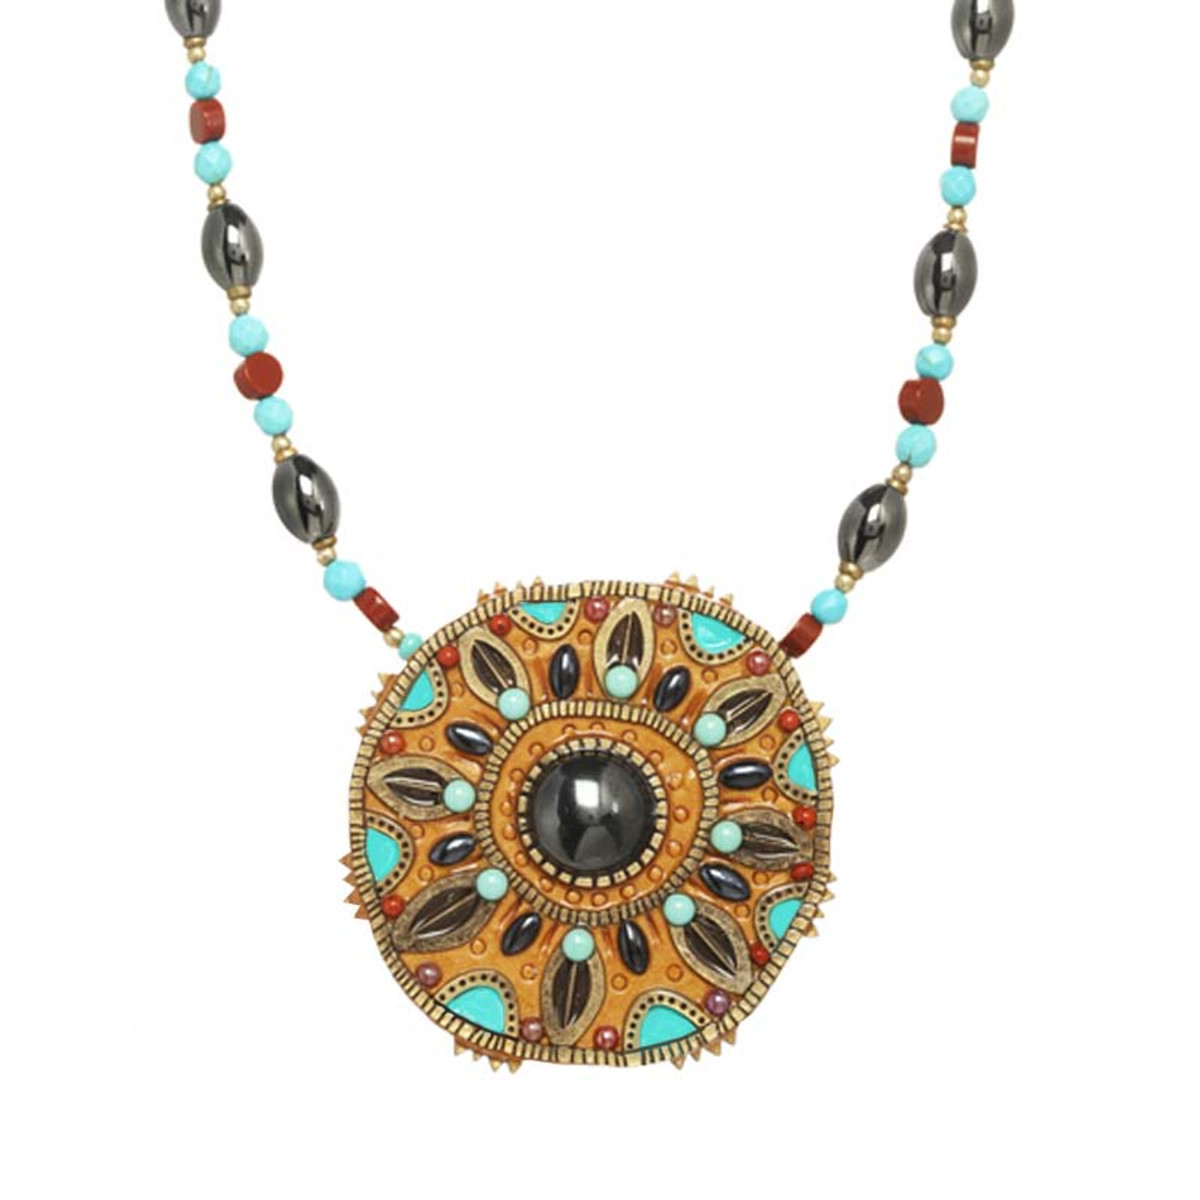 Gold Michal Golan Jewelry Southwest Necklace